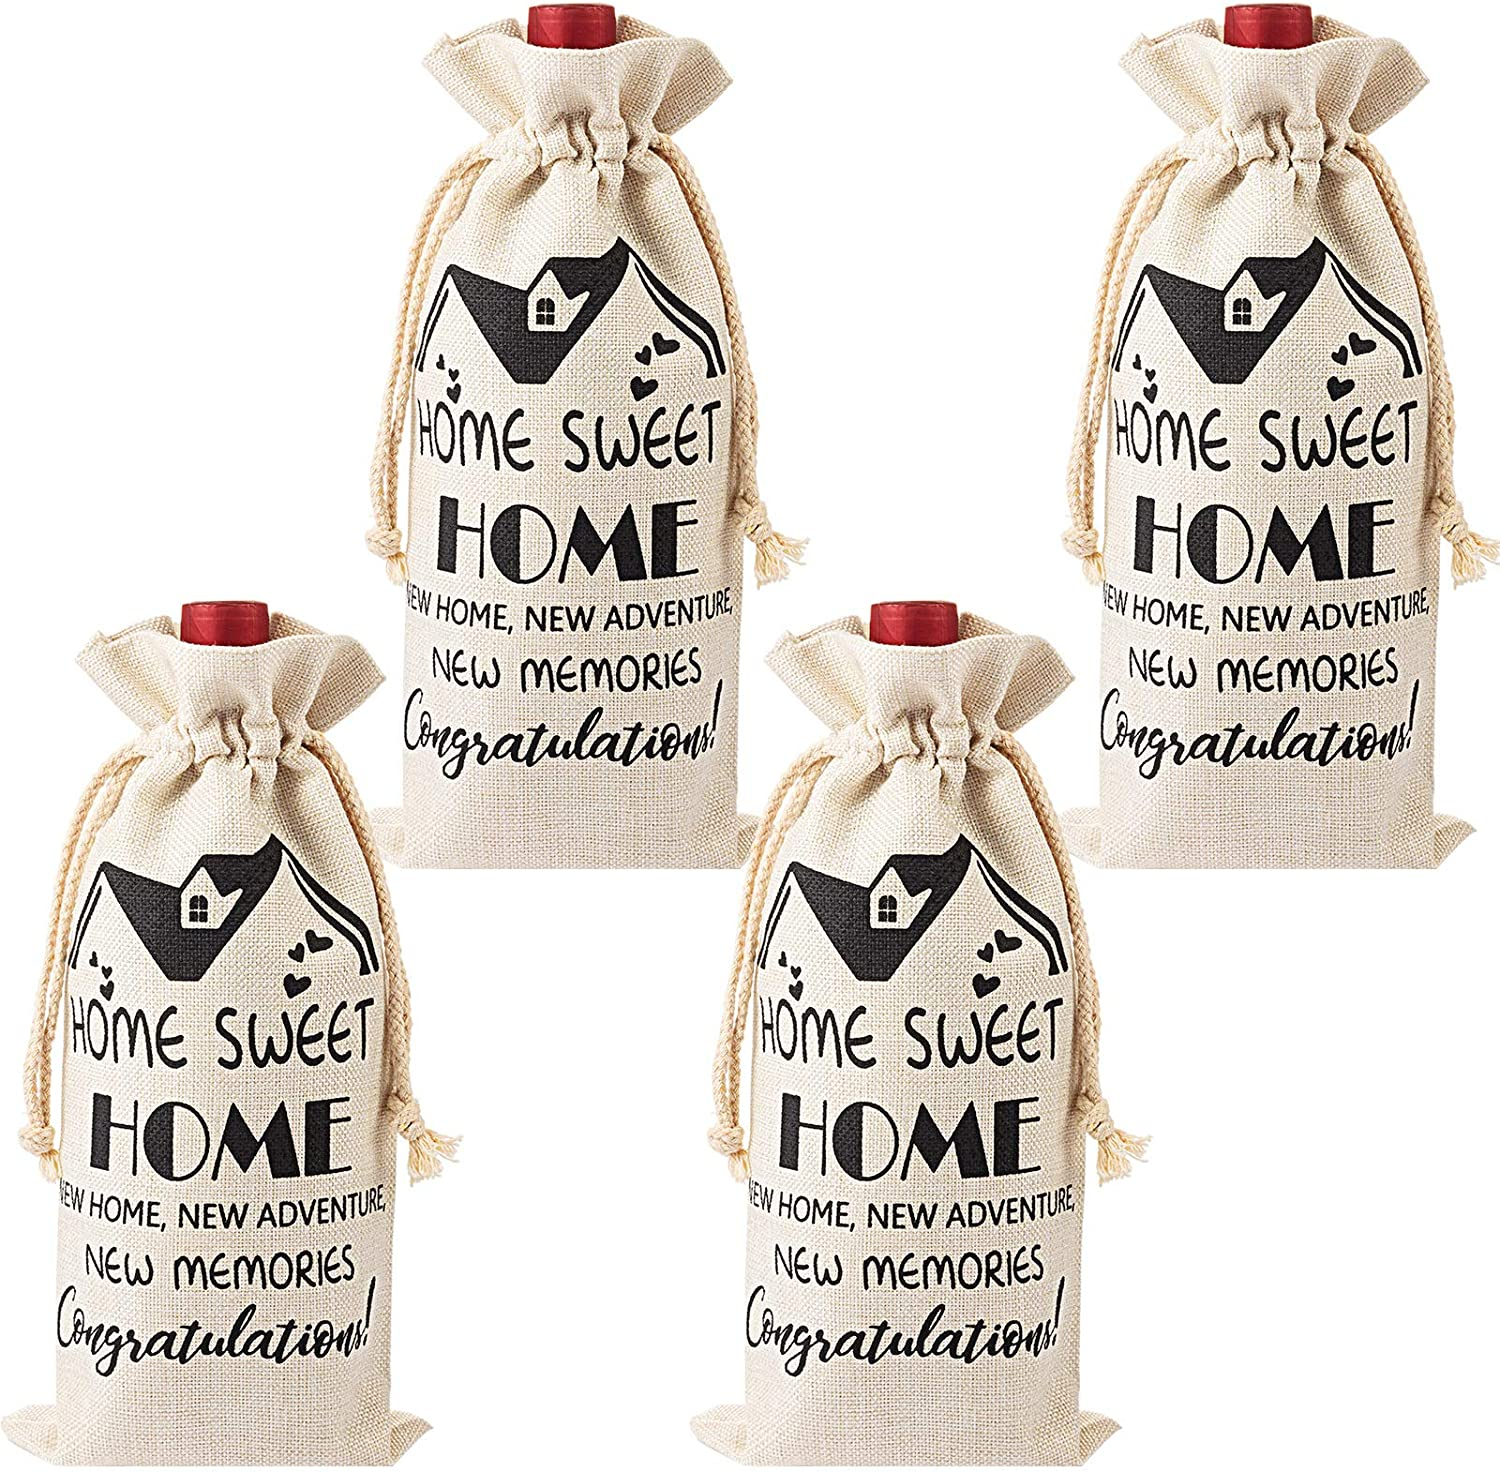 4 Pieces Housewarming Wine Bags Gifts for Home, House Warming Decoration Congrats Presents, First New Home House Homeowner Wine Bottle Bag Gifts for Men, Women, Friends, Coworkers